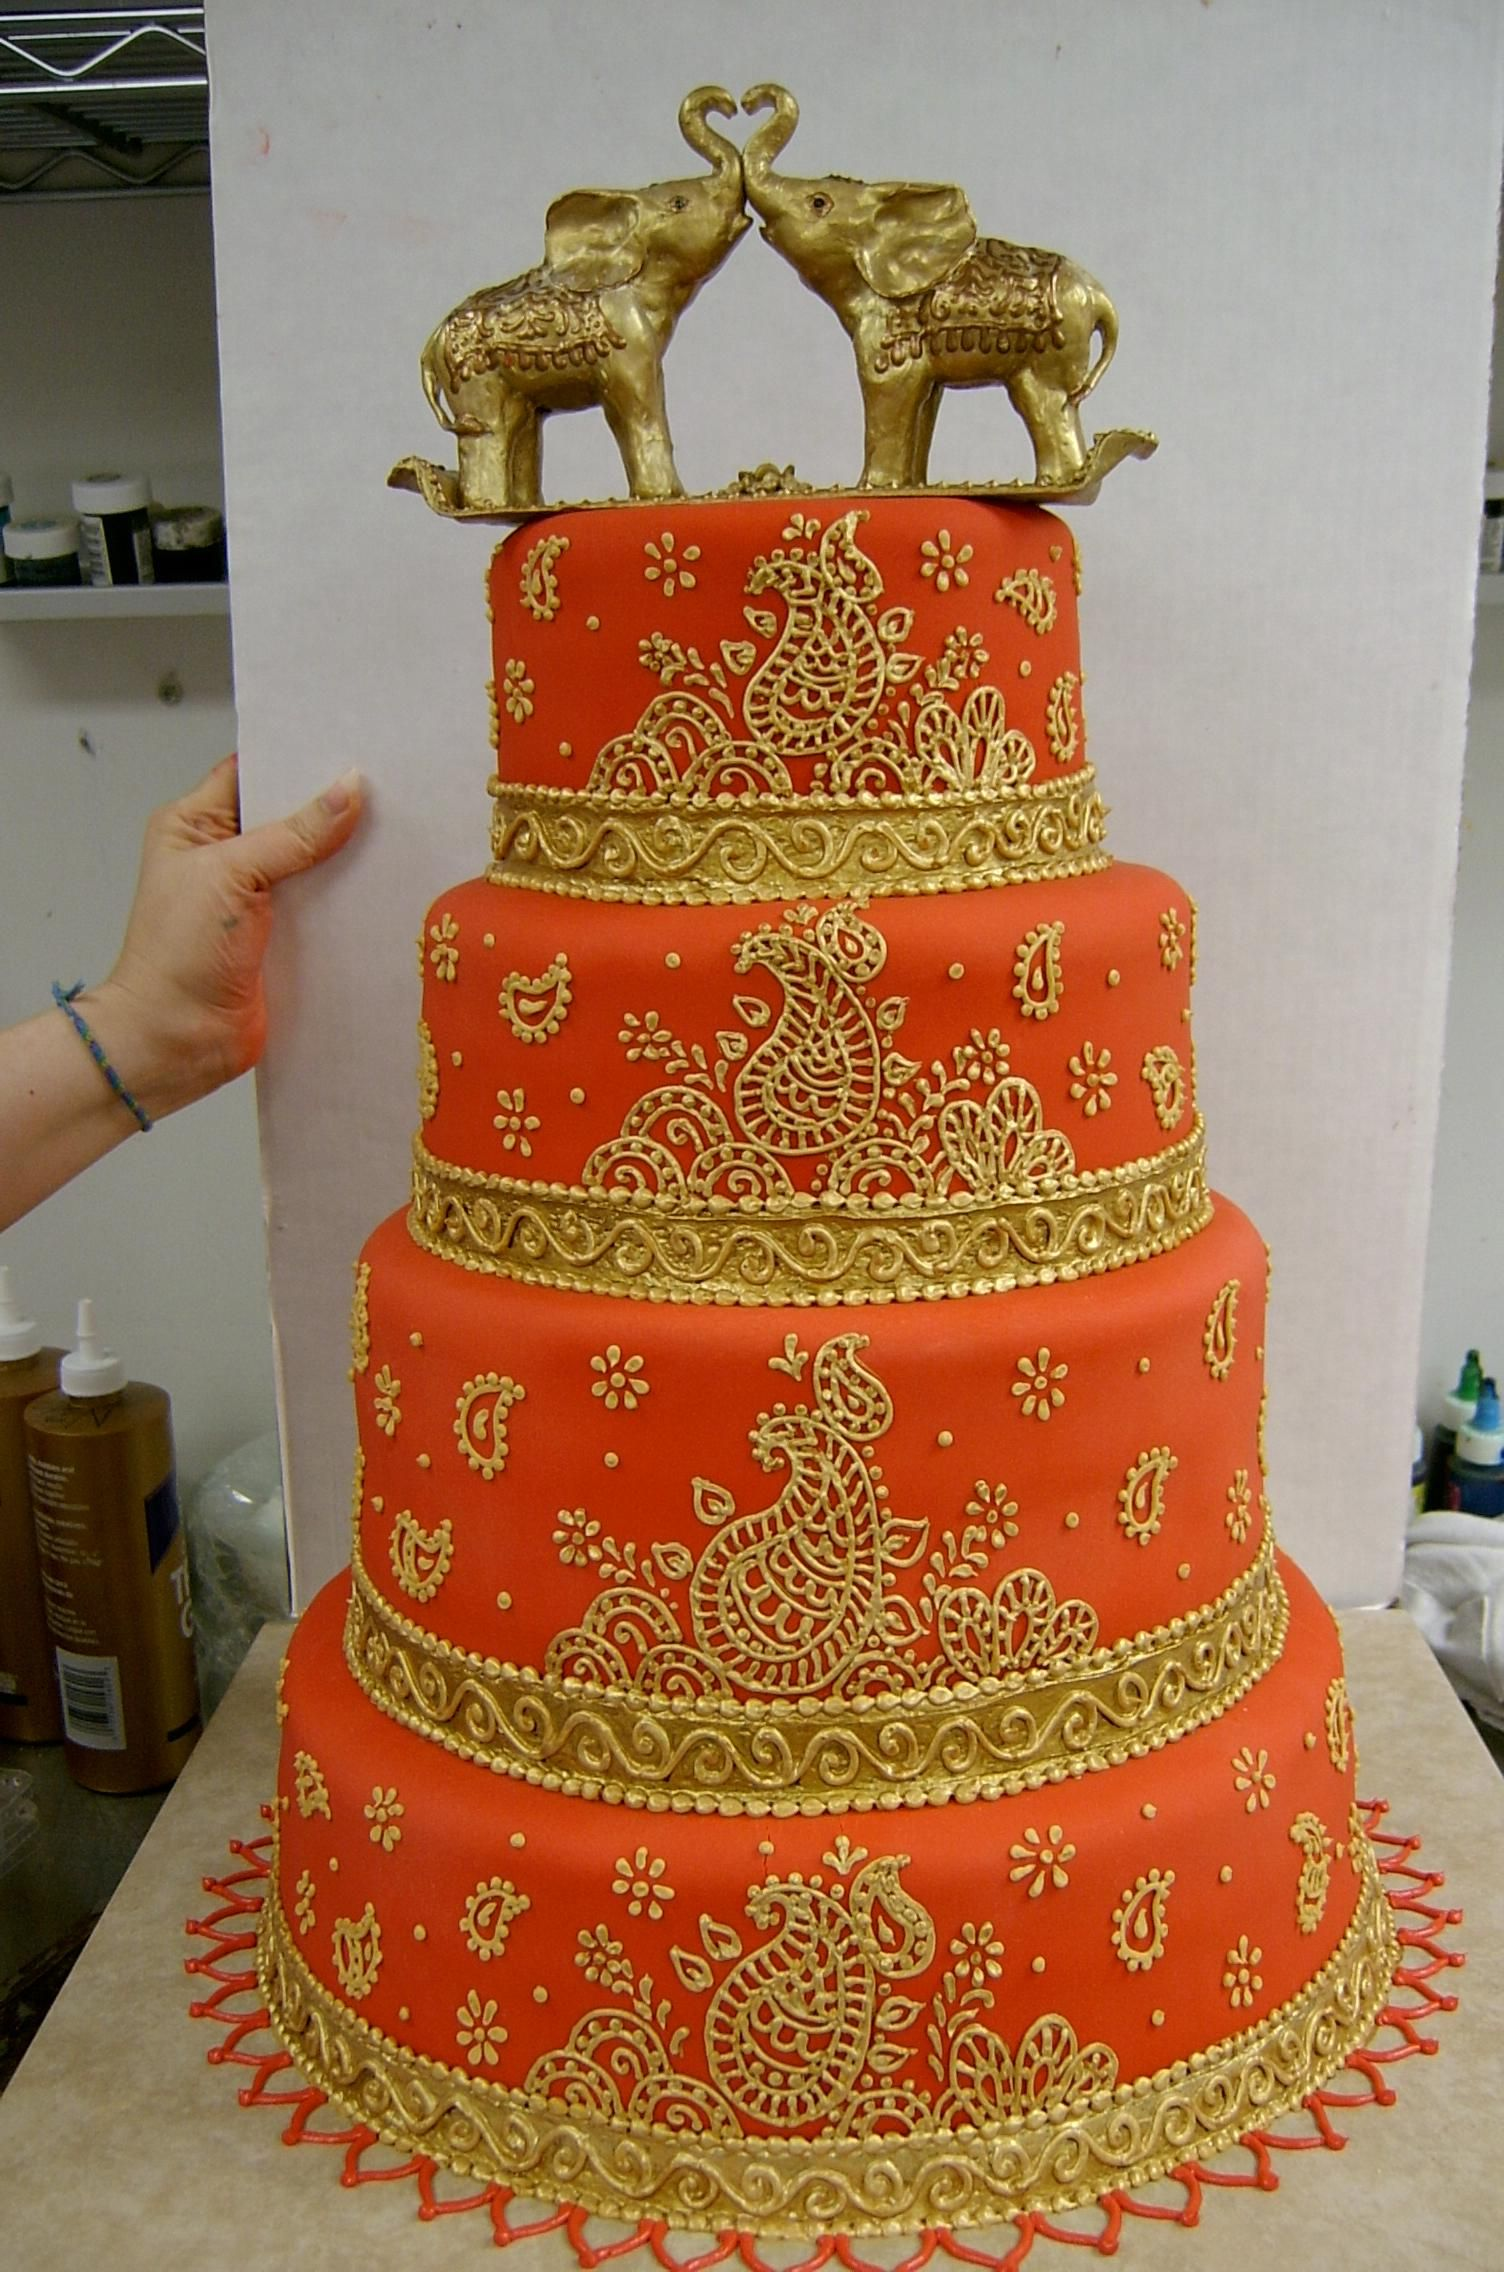 Top 10 Indian Themed Wedding Cakes Wedding Cakes Gâteau